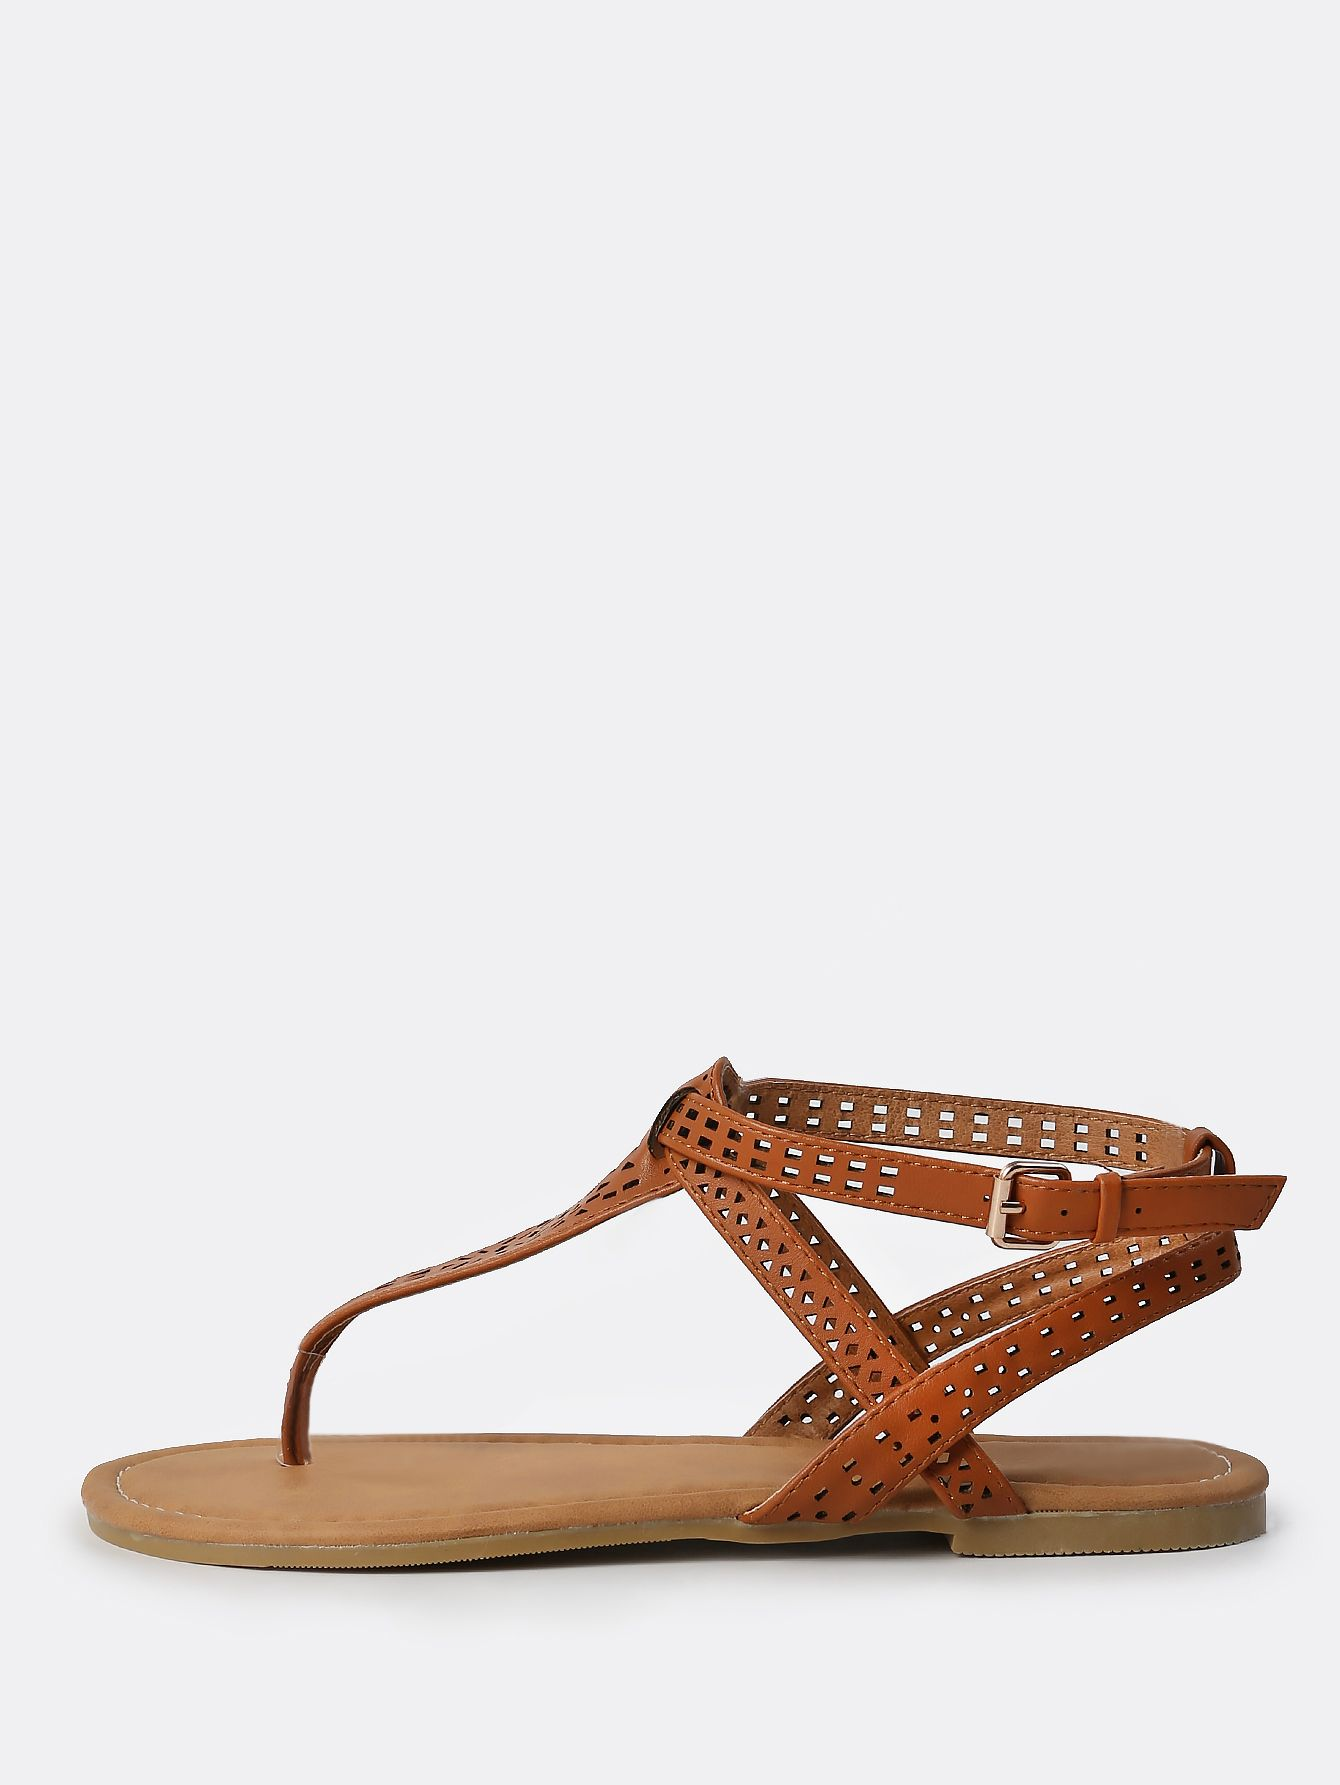 Shop Faux Leather Geo Cut Sandals CHESTNUT online. SheIn offers Faux Leather Geo Cut Sandals CHESTNUT & more to fit your fashionable needs.